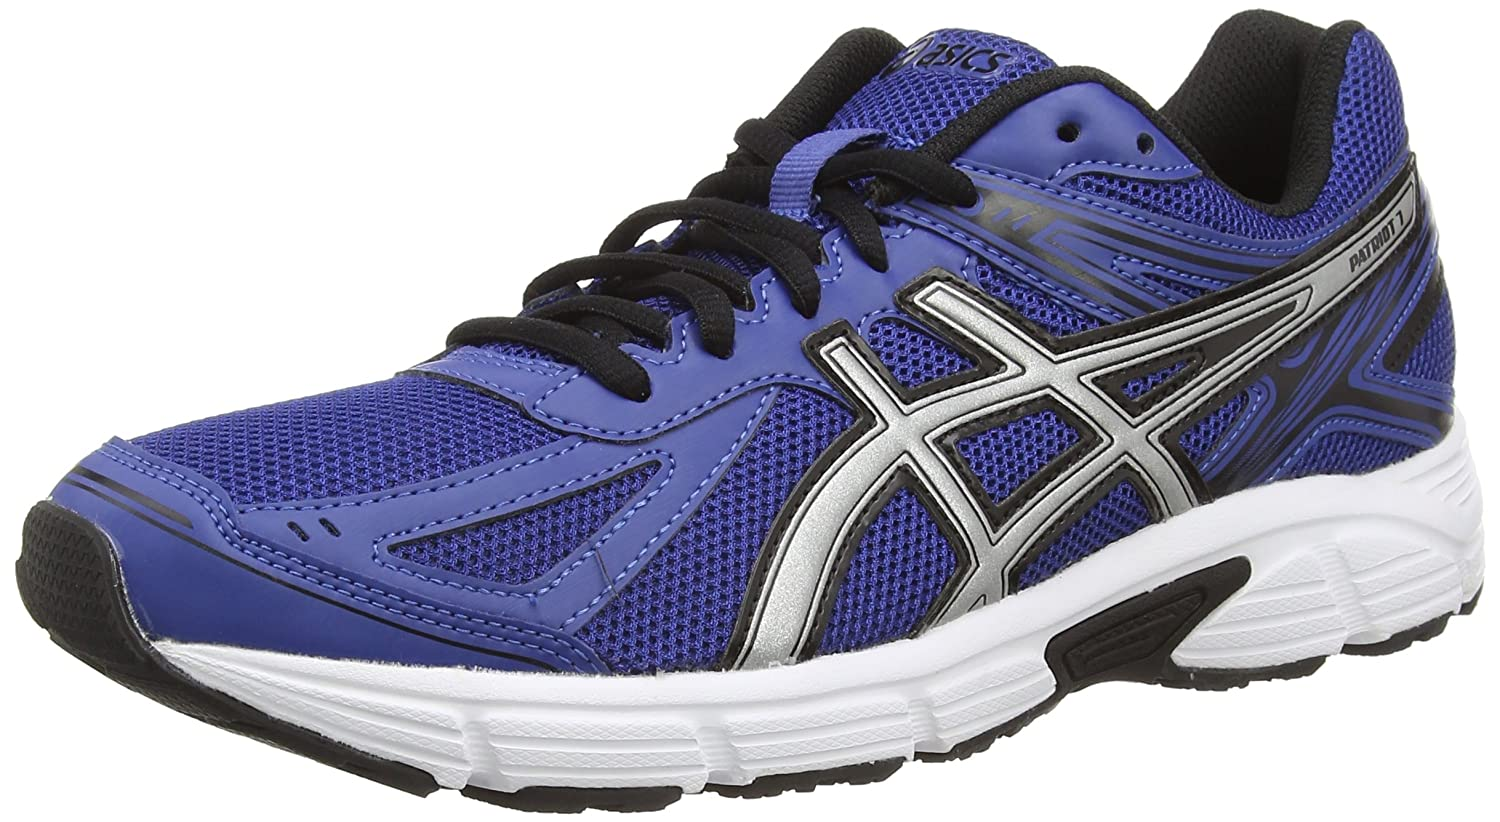 302e6c37dadc ASICS Patriot 7